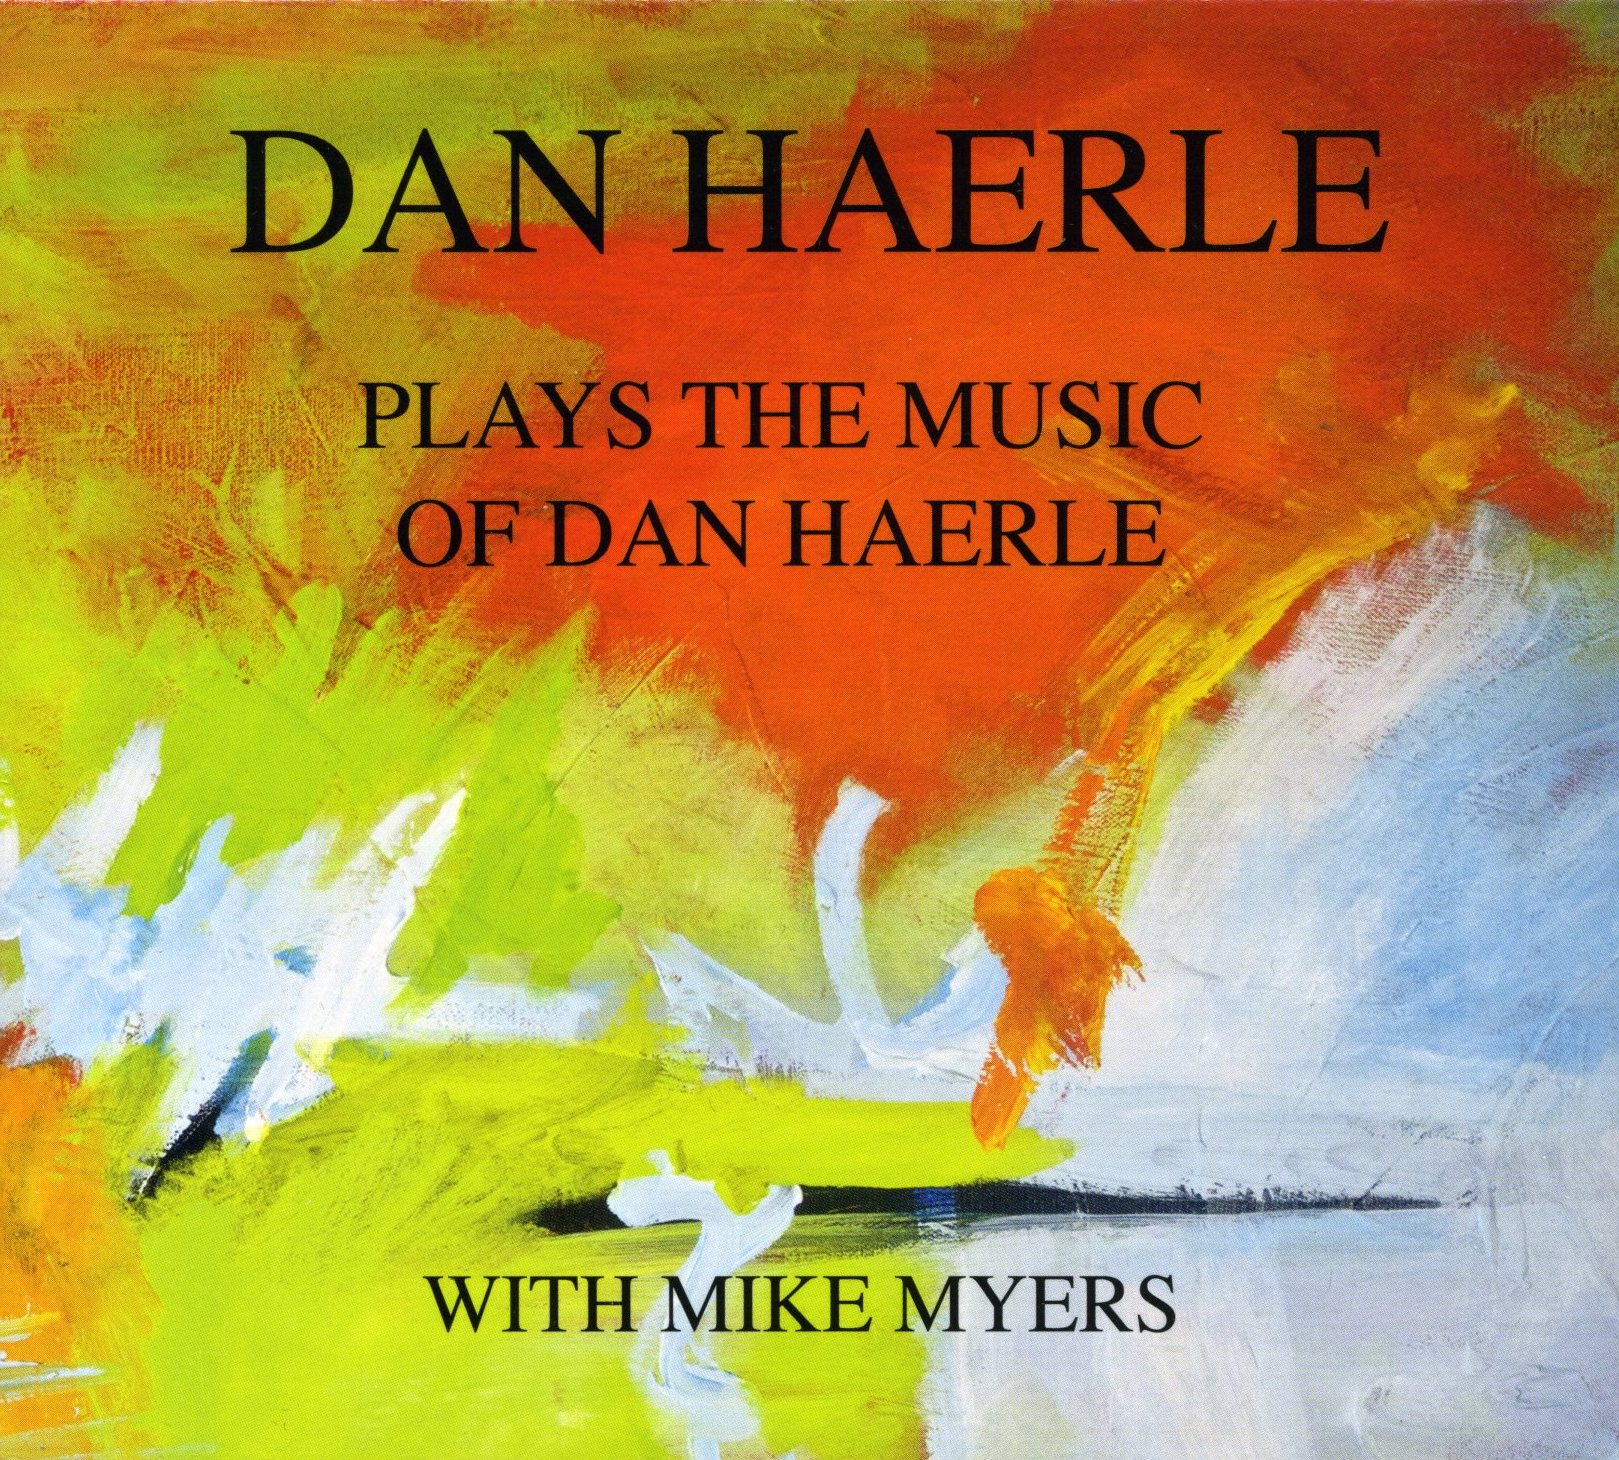 Dan Haerle Plays the Music of Dan Haerle with Mike Myers